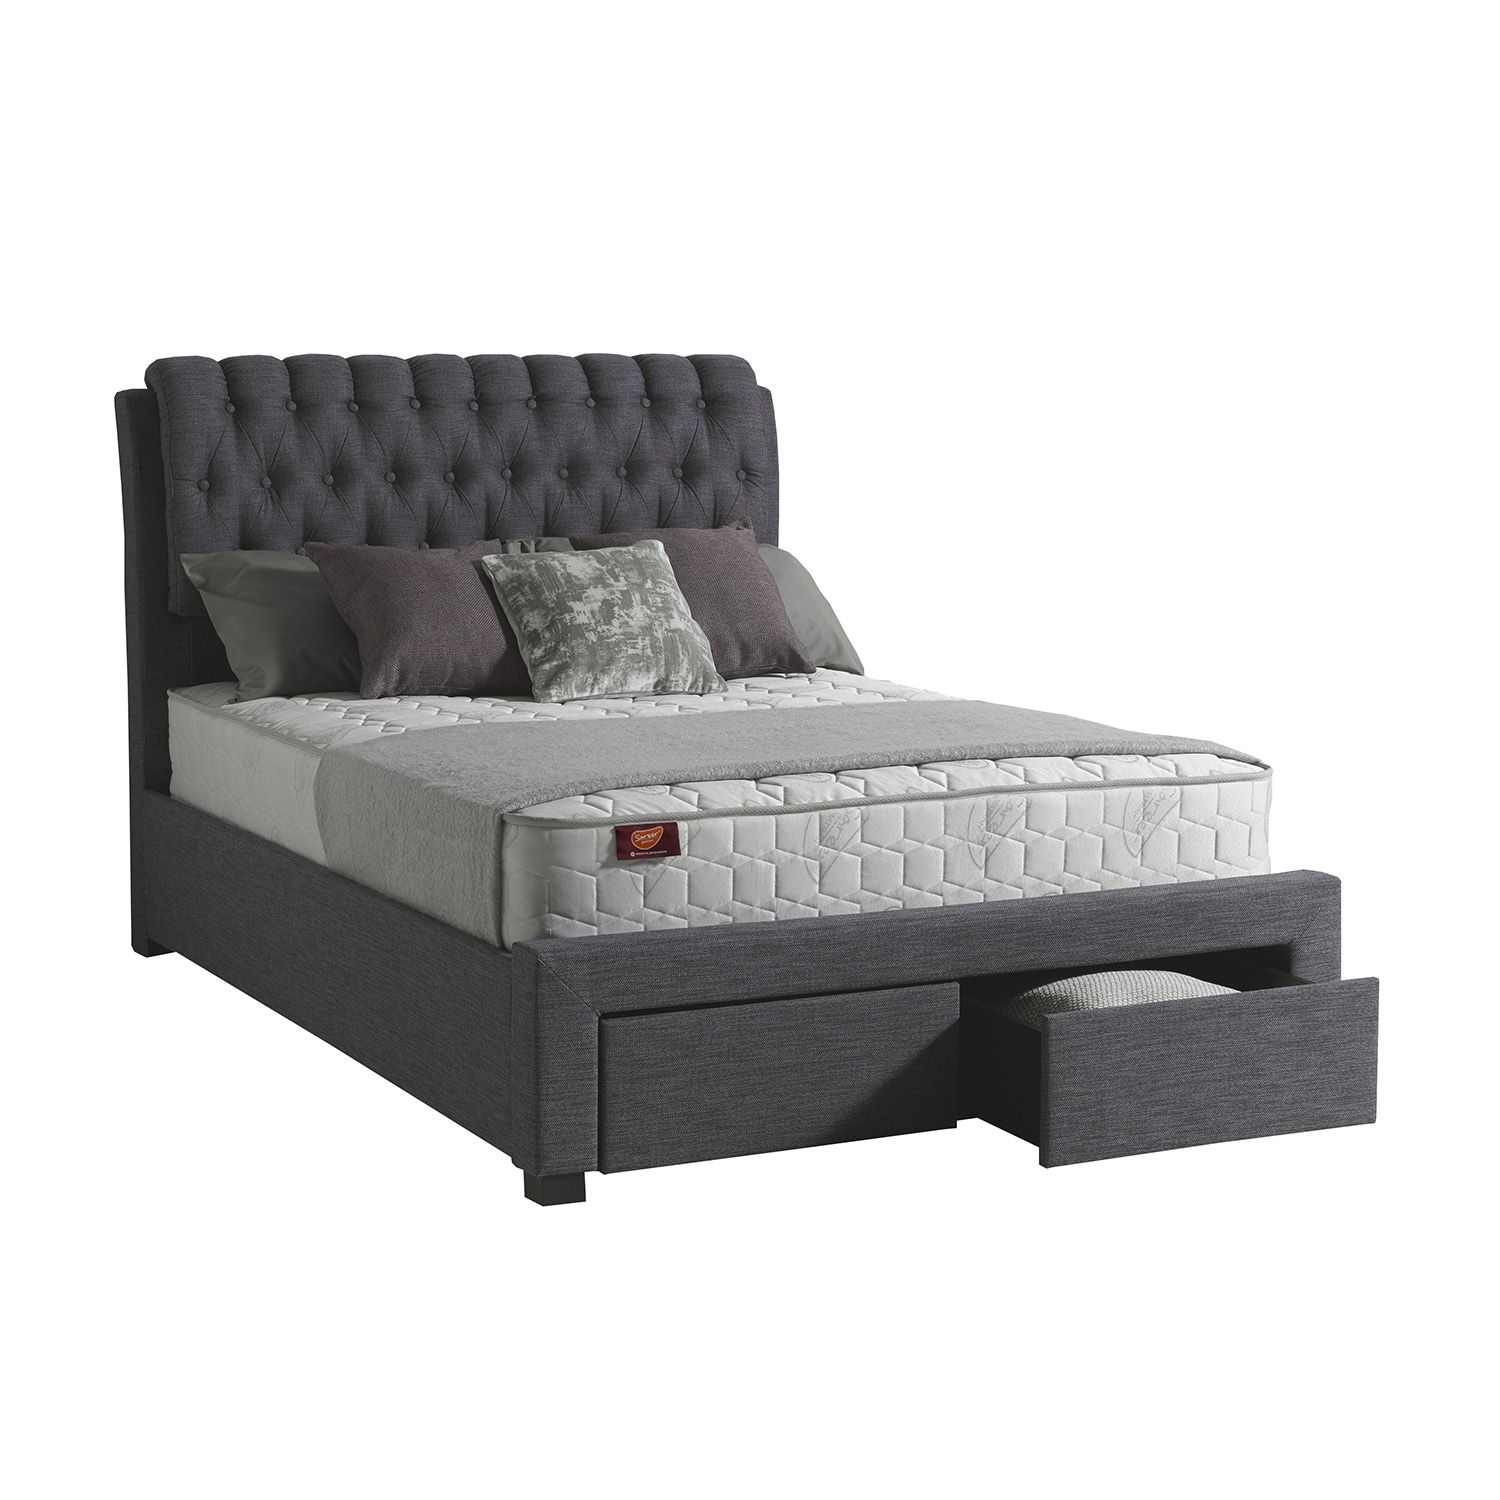 Sareer Lovton Bed Frame  up to 60% OFF RRP  Next Day - Select Day ...